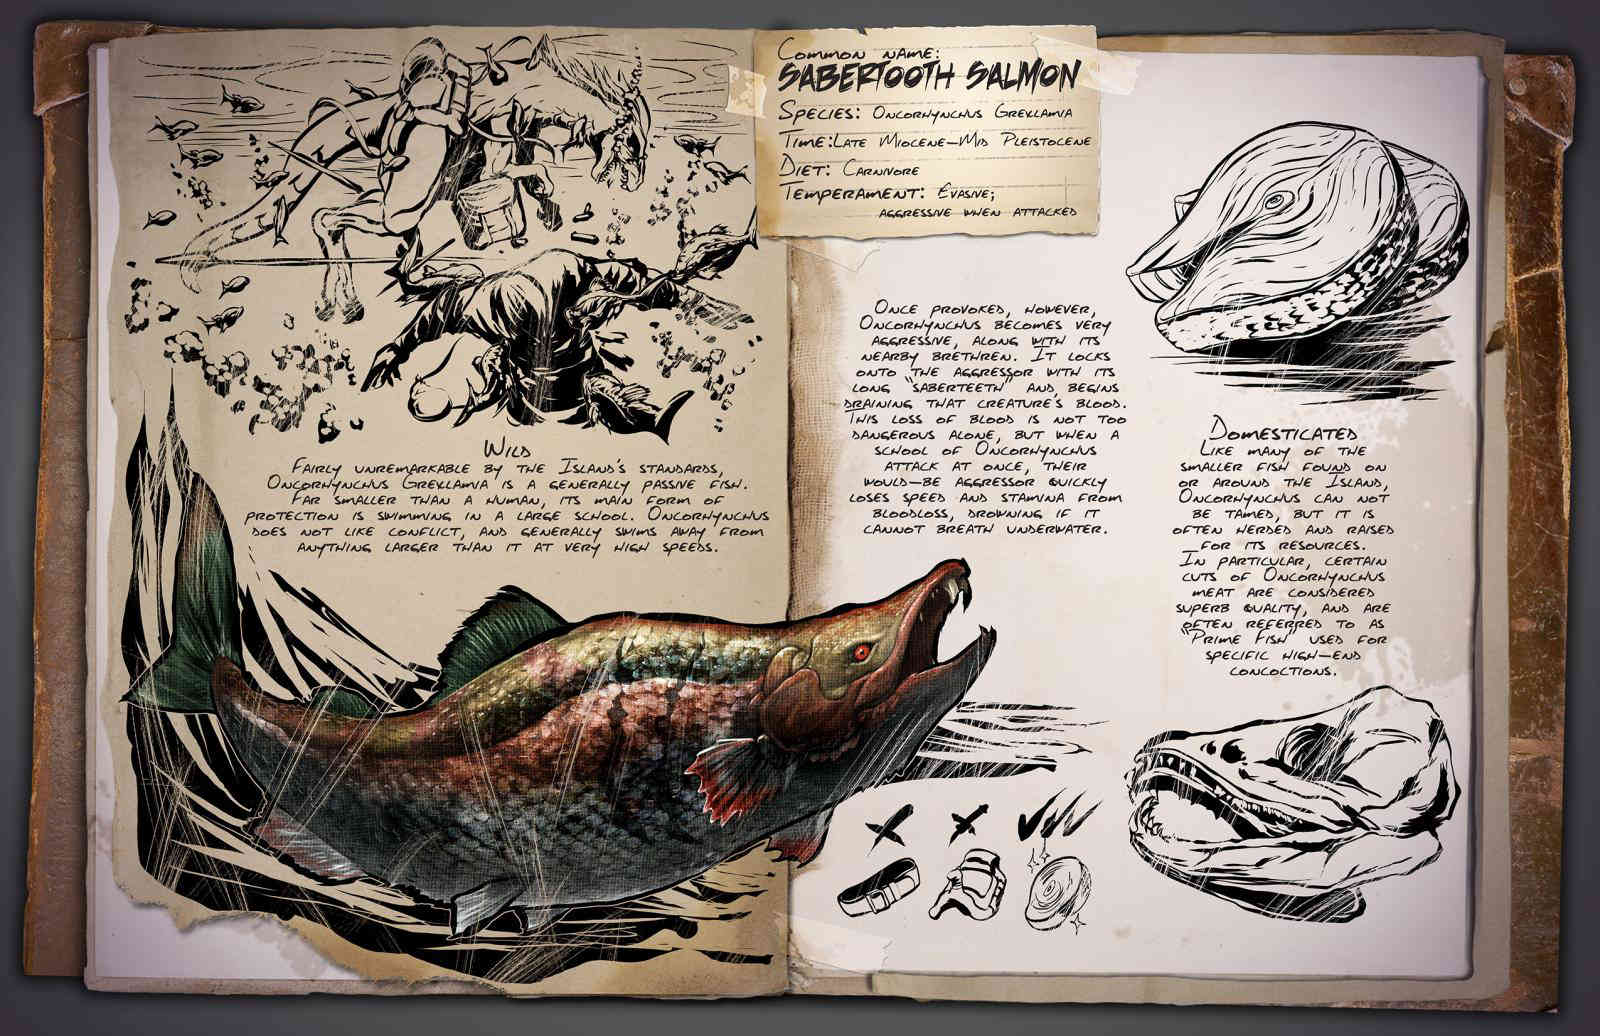 ARK Dossier Sabertooth Salmon